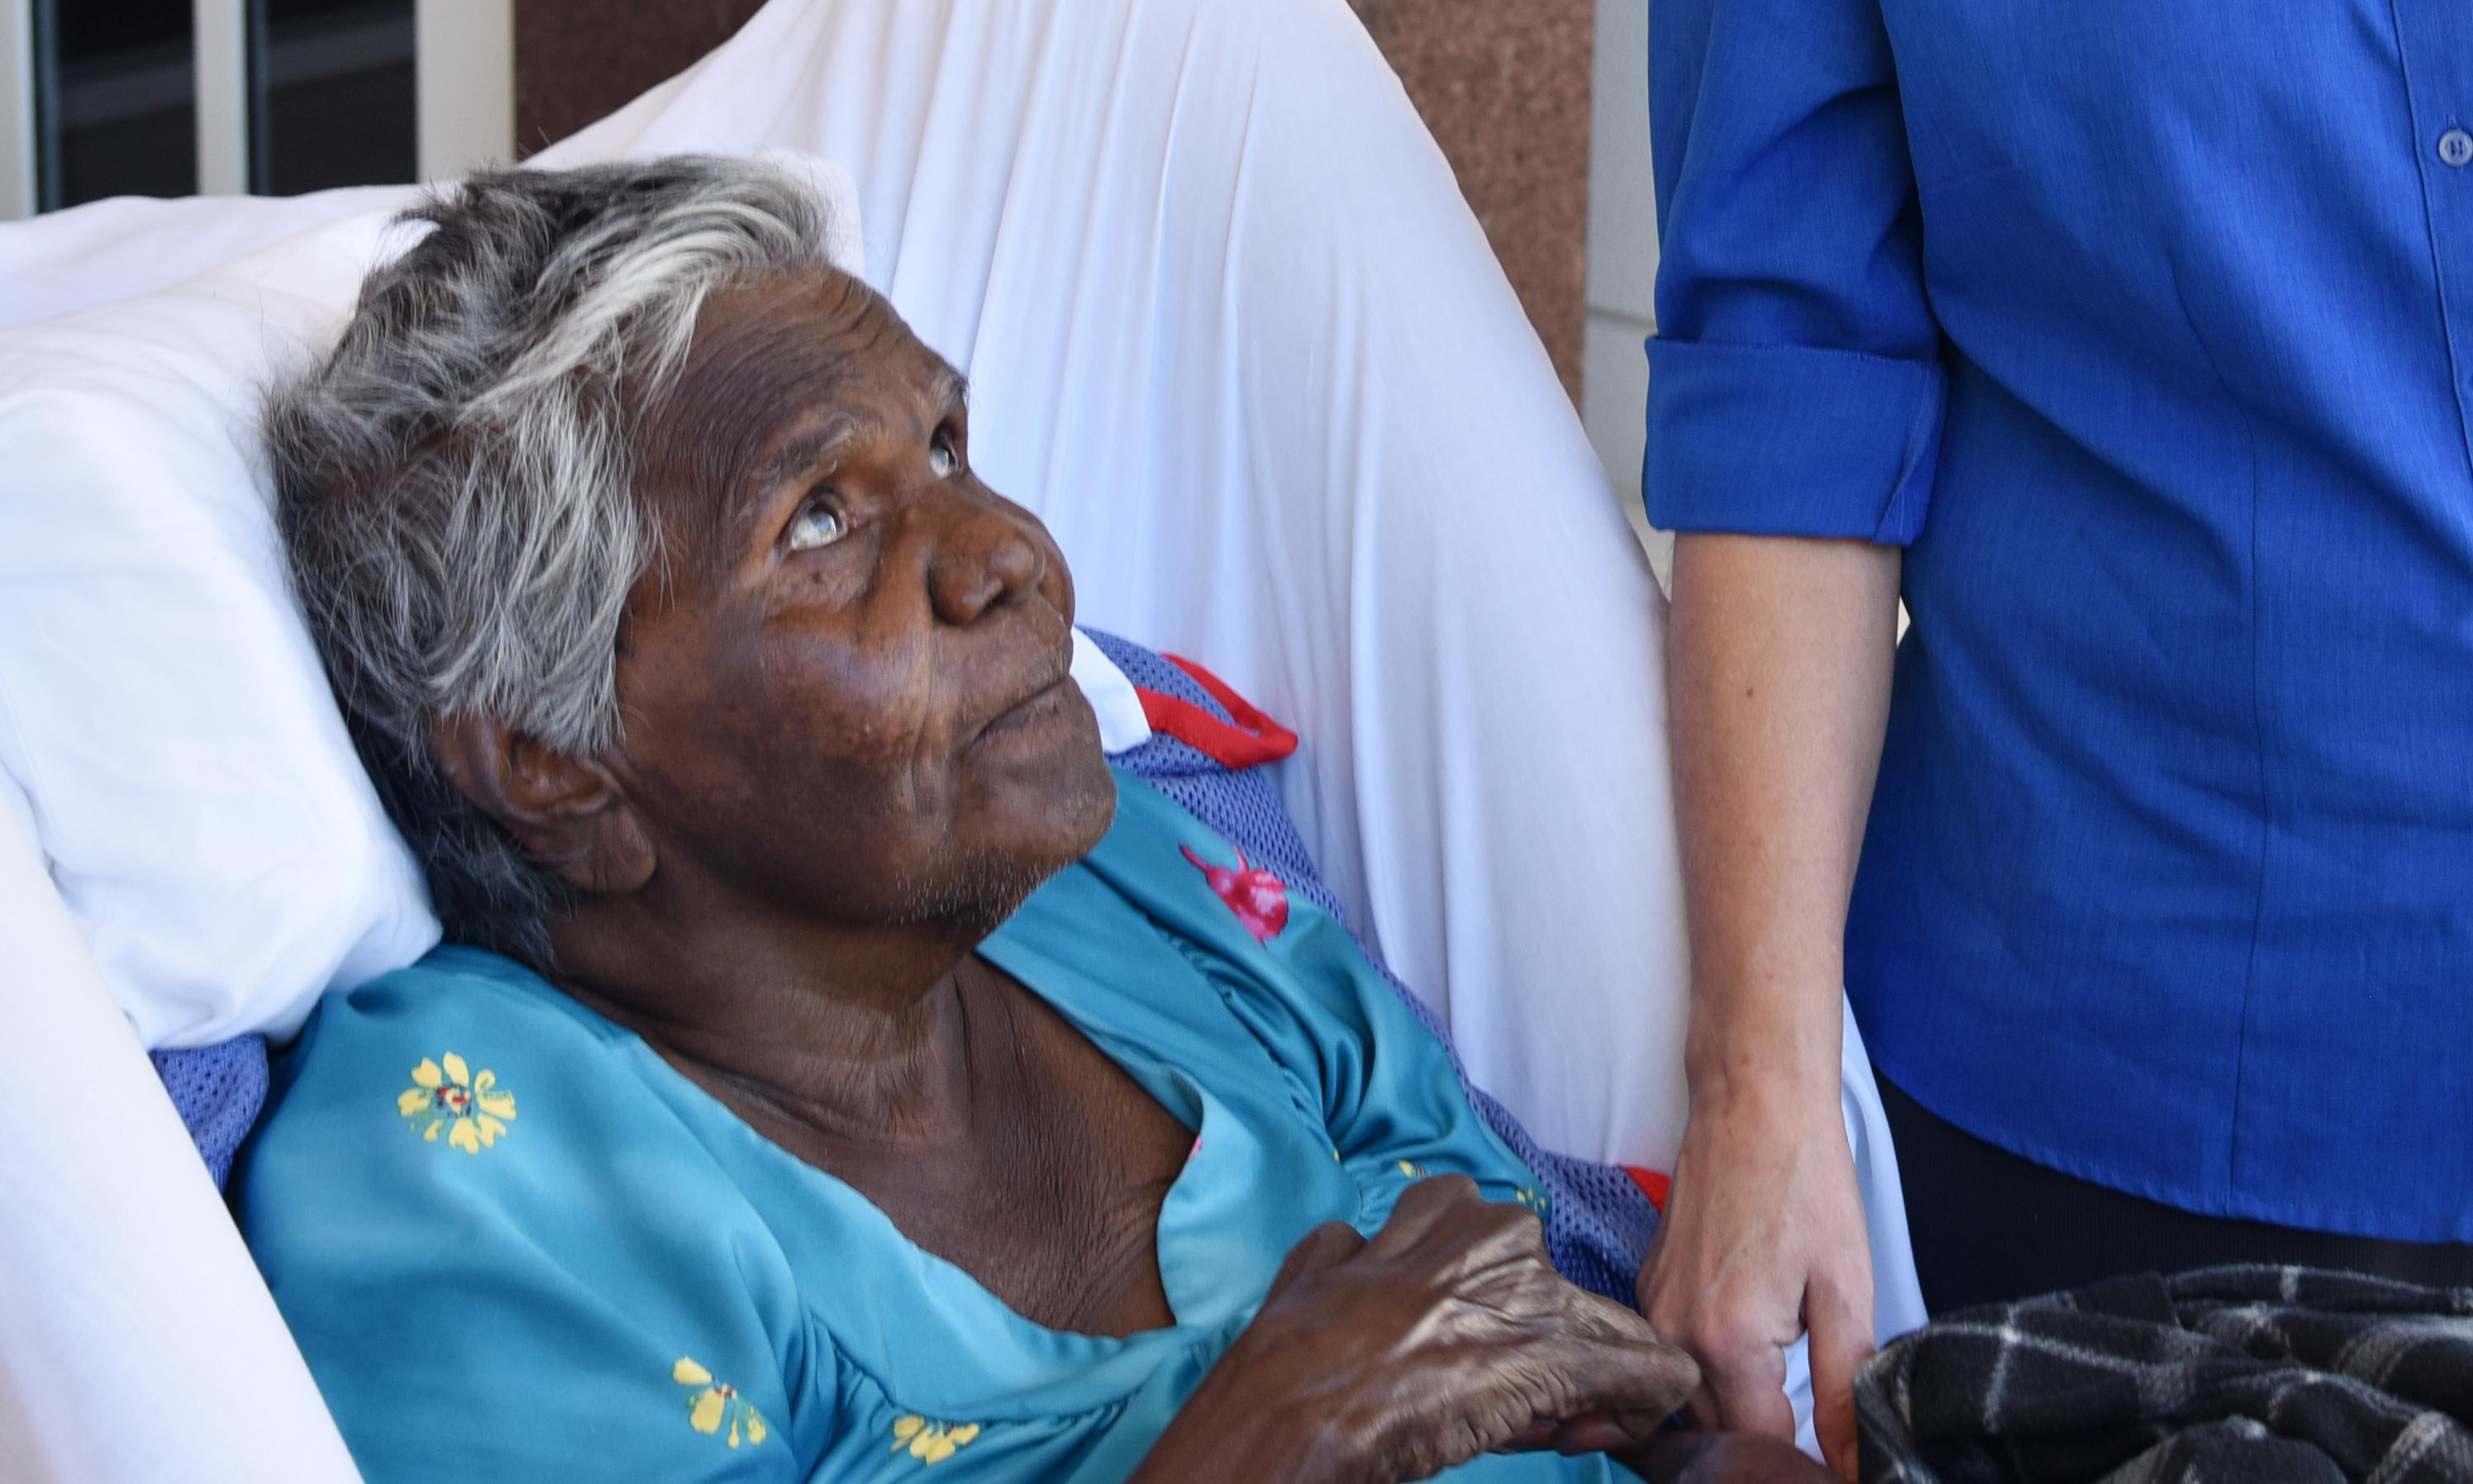 'My heart is crying': Indigenous elders face death far from home amid aged care shortages